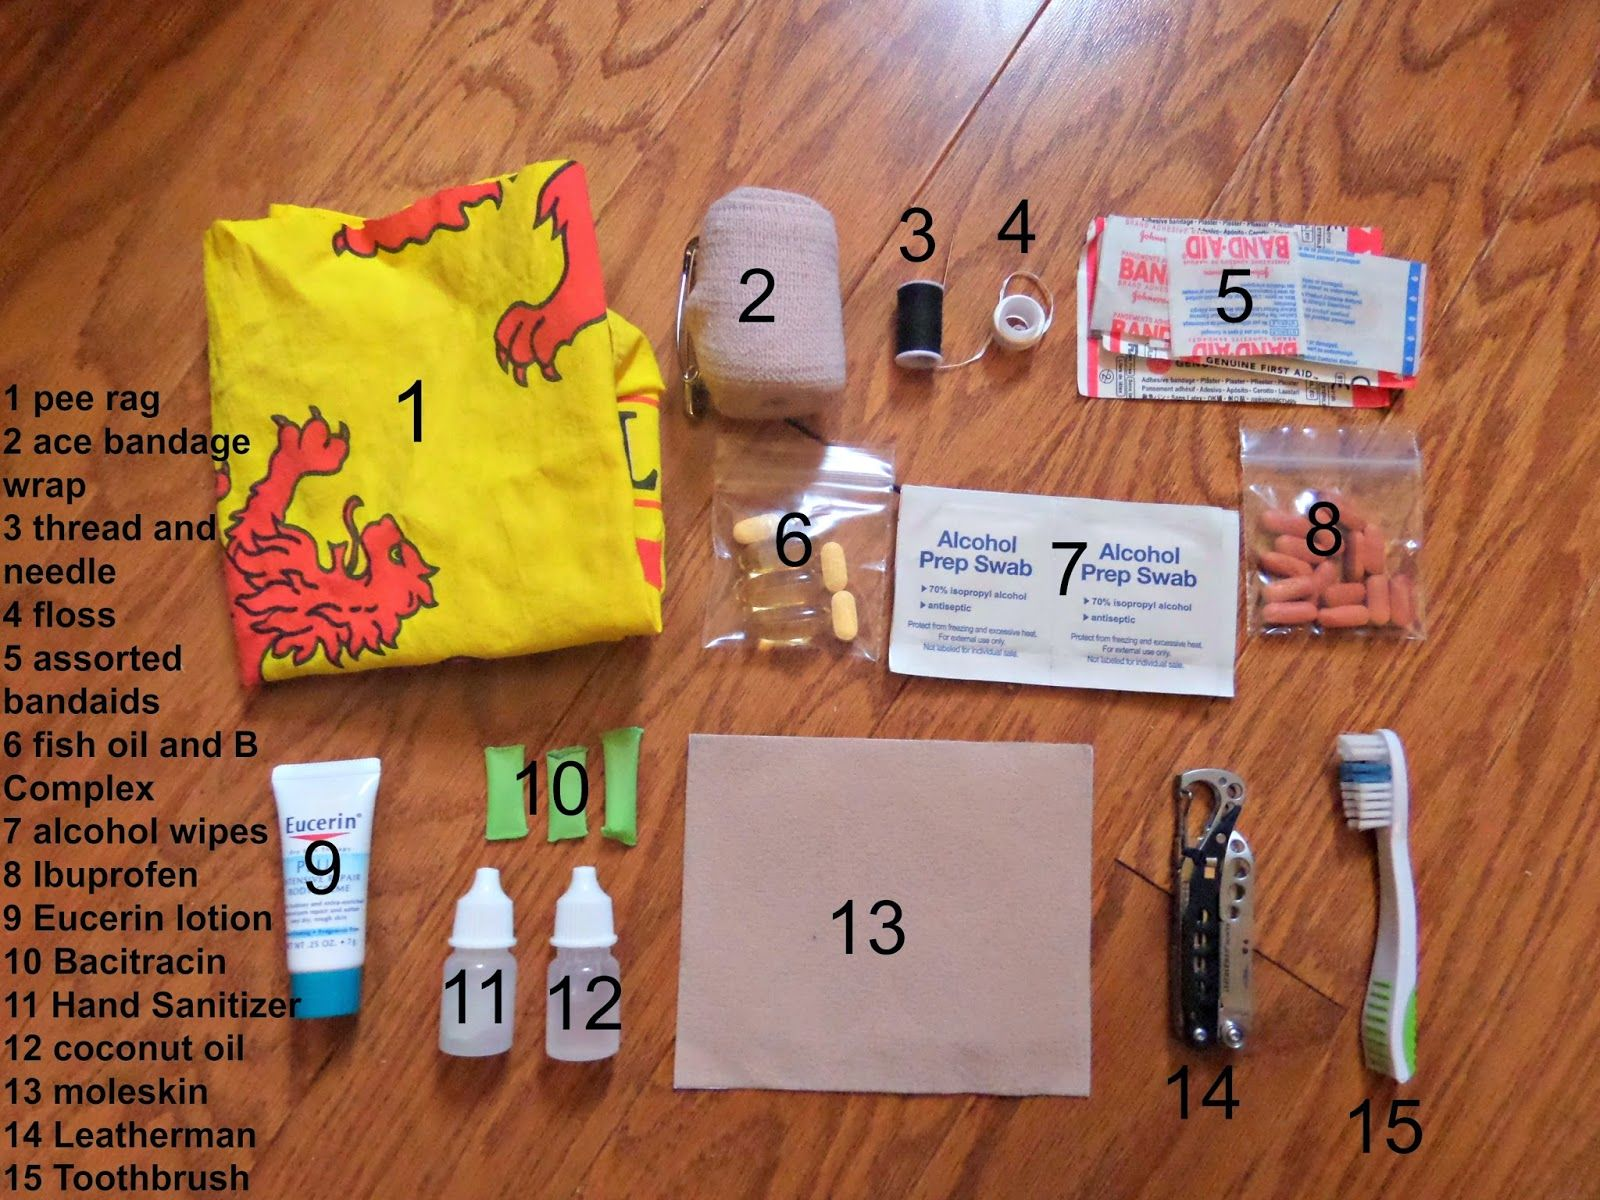 Backpacking First Aid And Hygiene Kit With Images Camping Kit